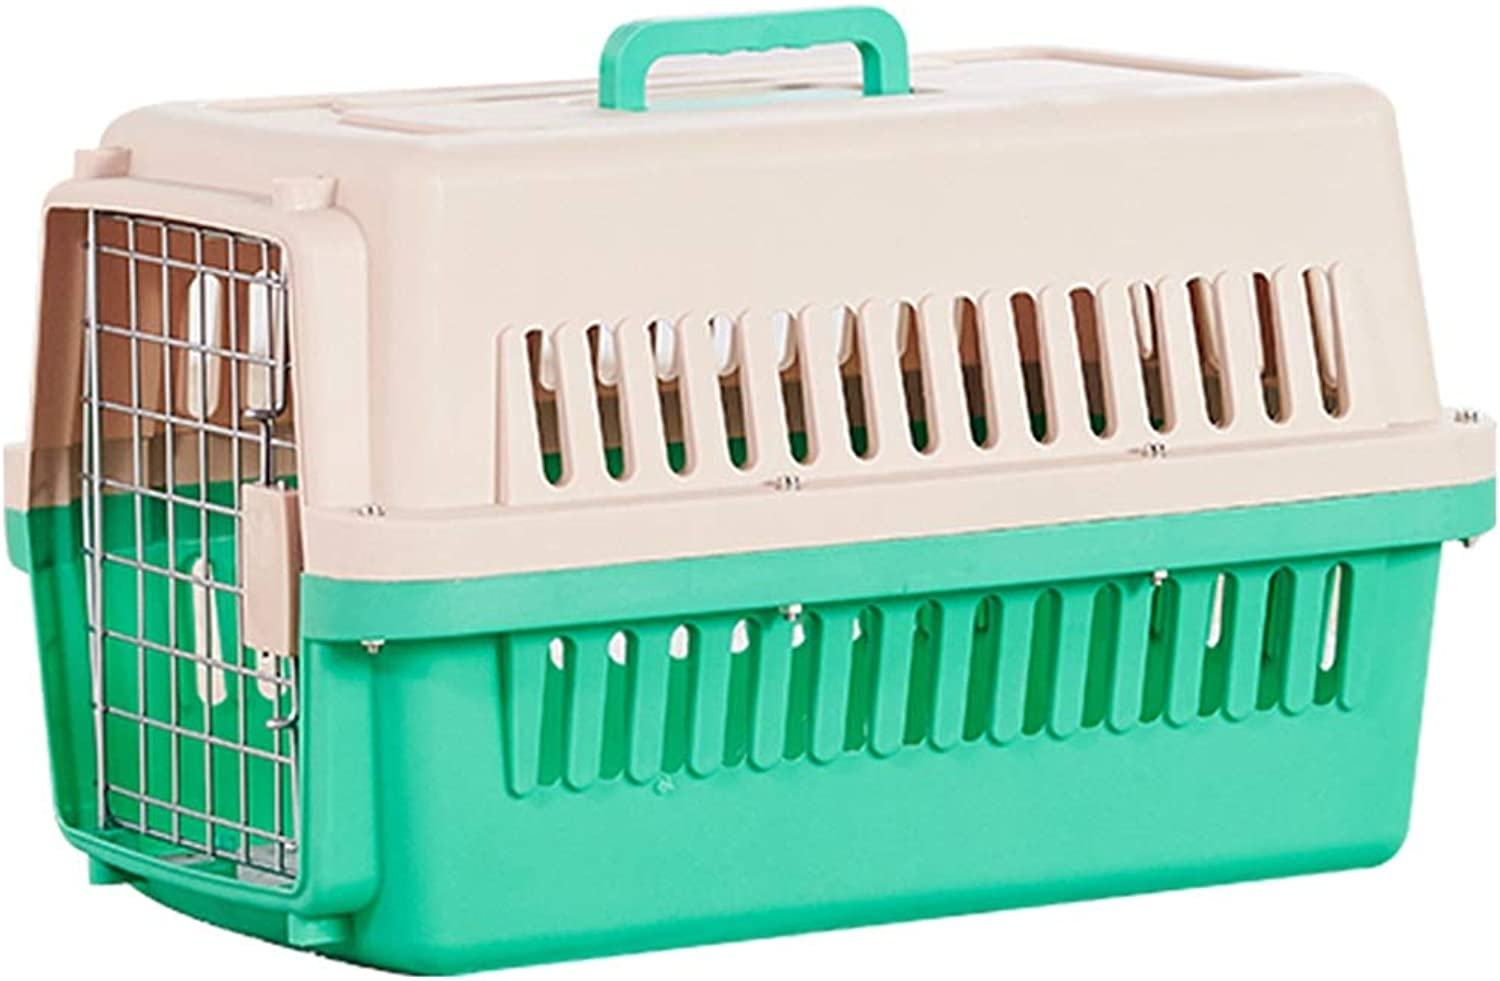 Jlxl Pet Dog Carrier Box, Portable Small Cat Checked Box Car Aircraft Transport Stainless Steel Iron Door Safety Latch (color   Green)